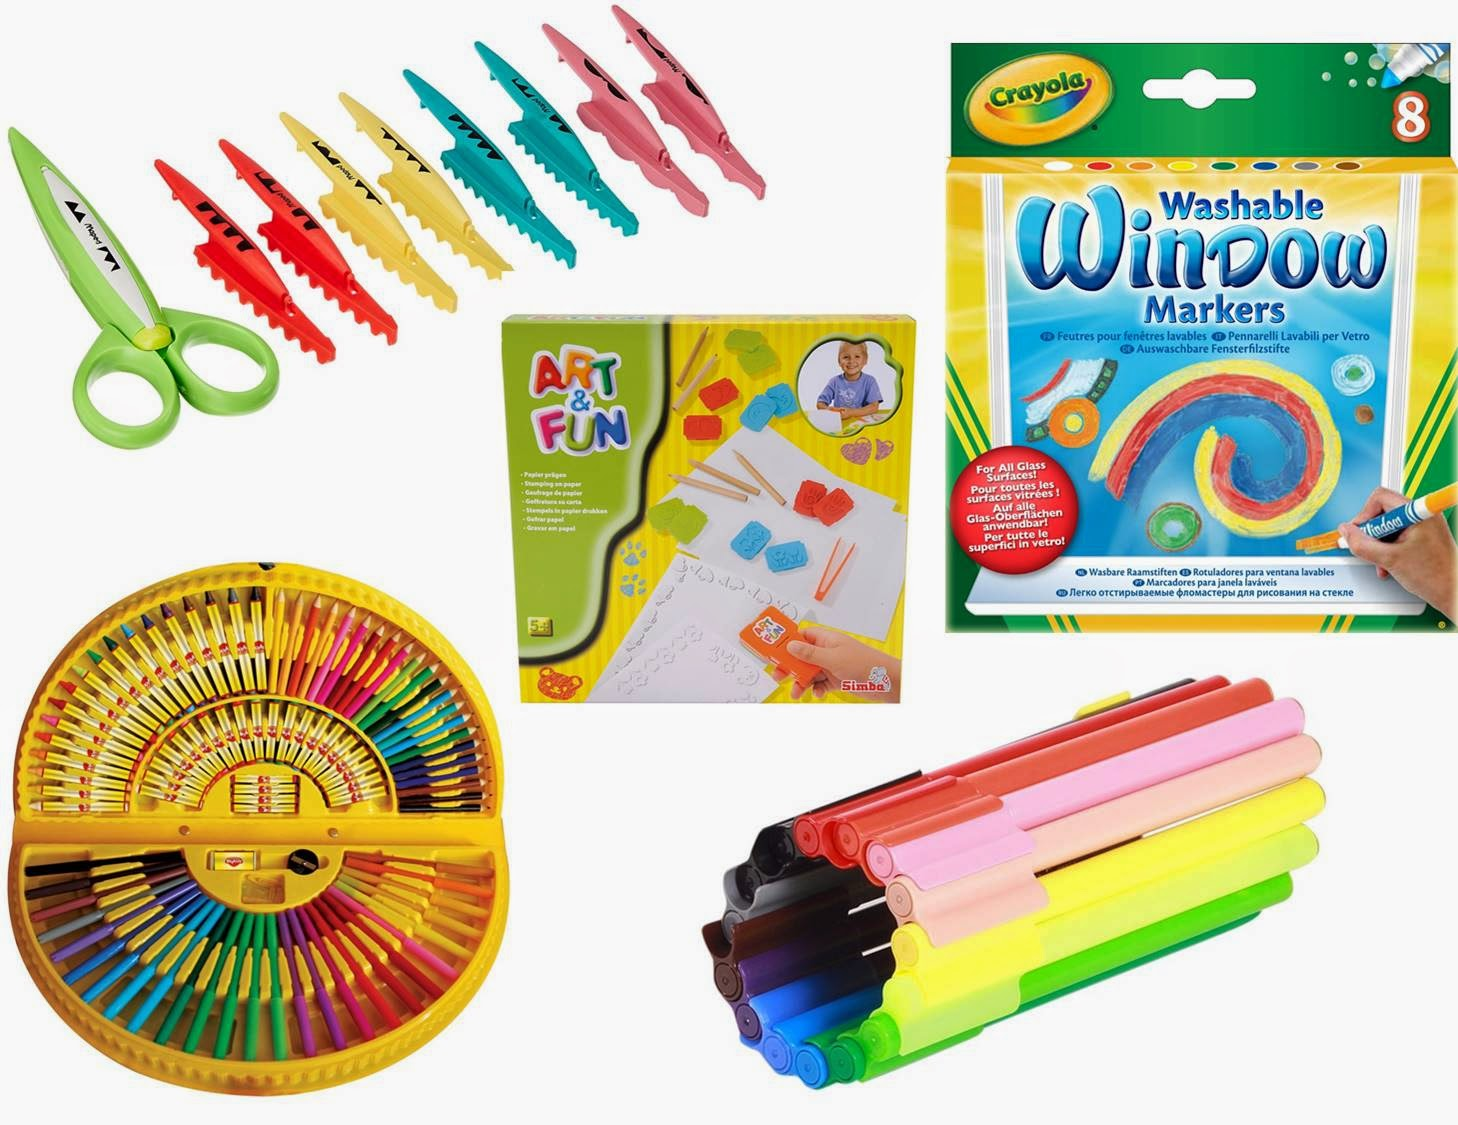 5 Awesome Stationery Products for Kids